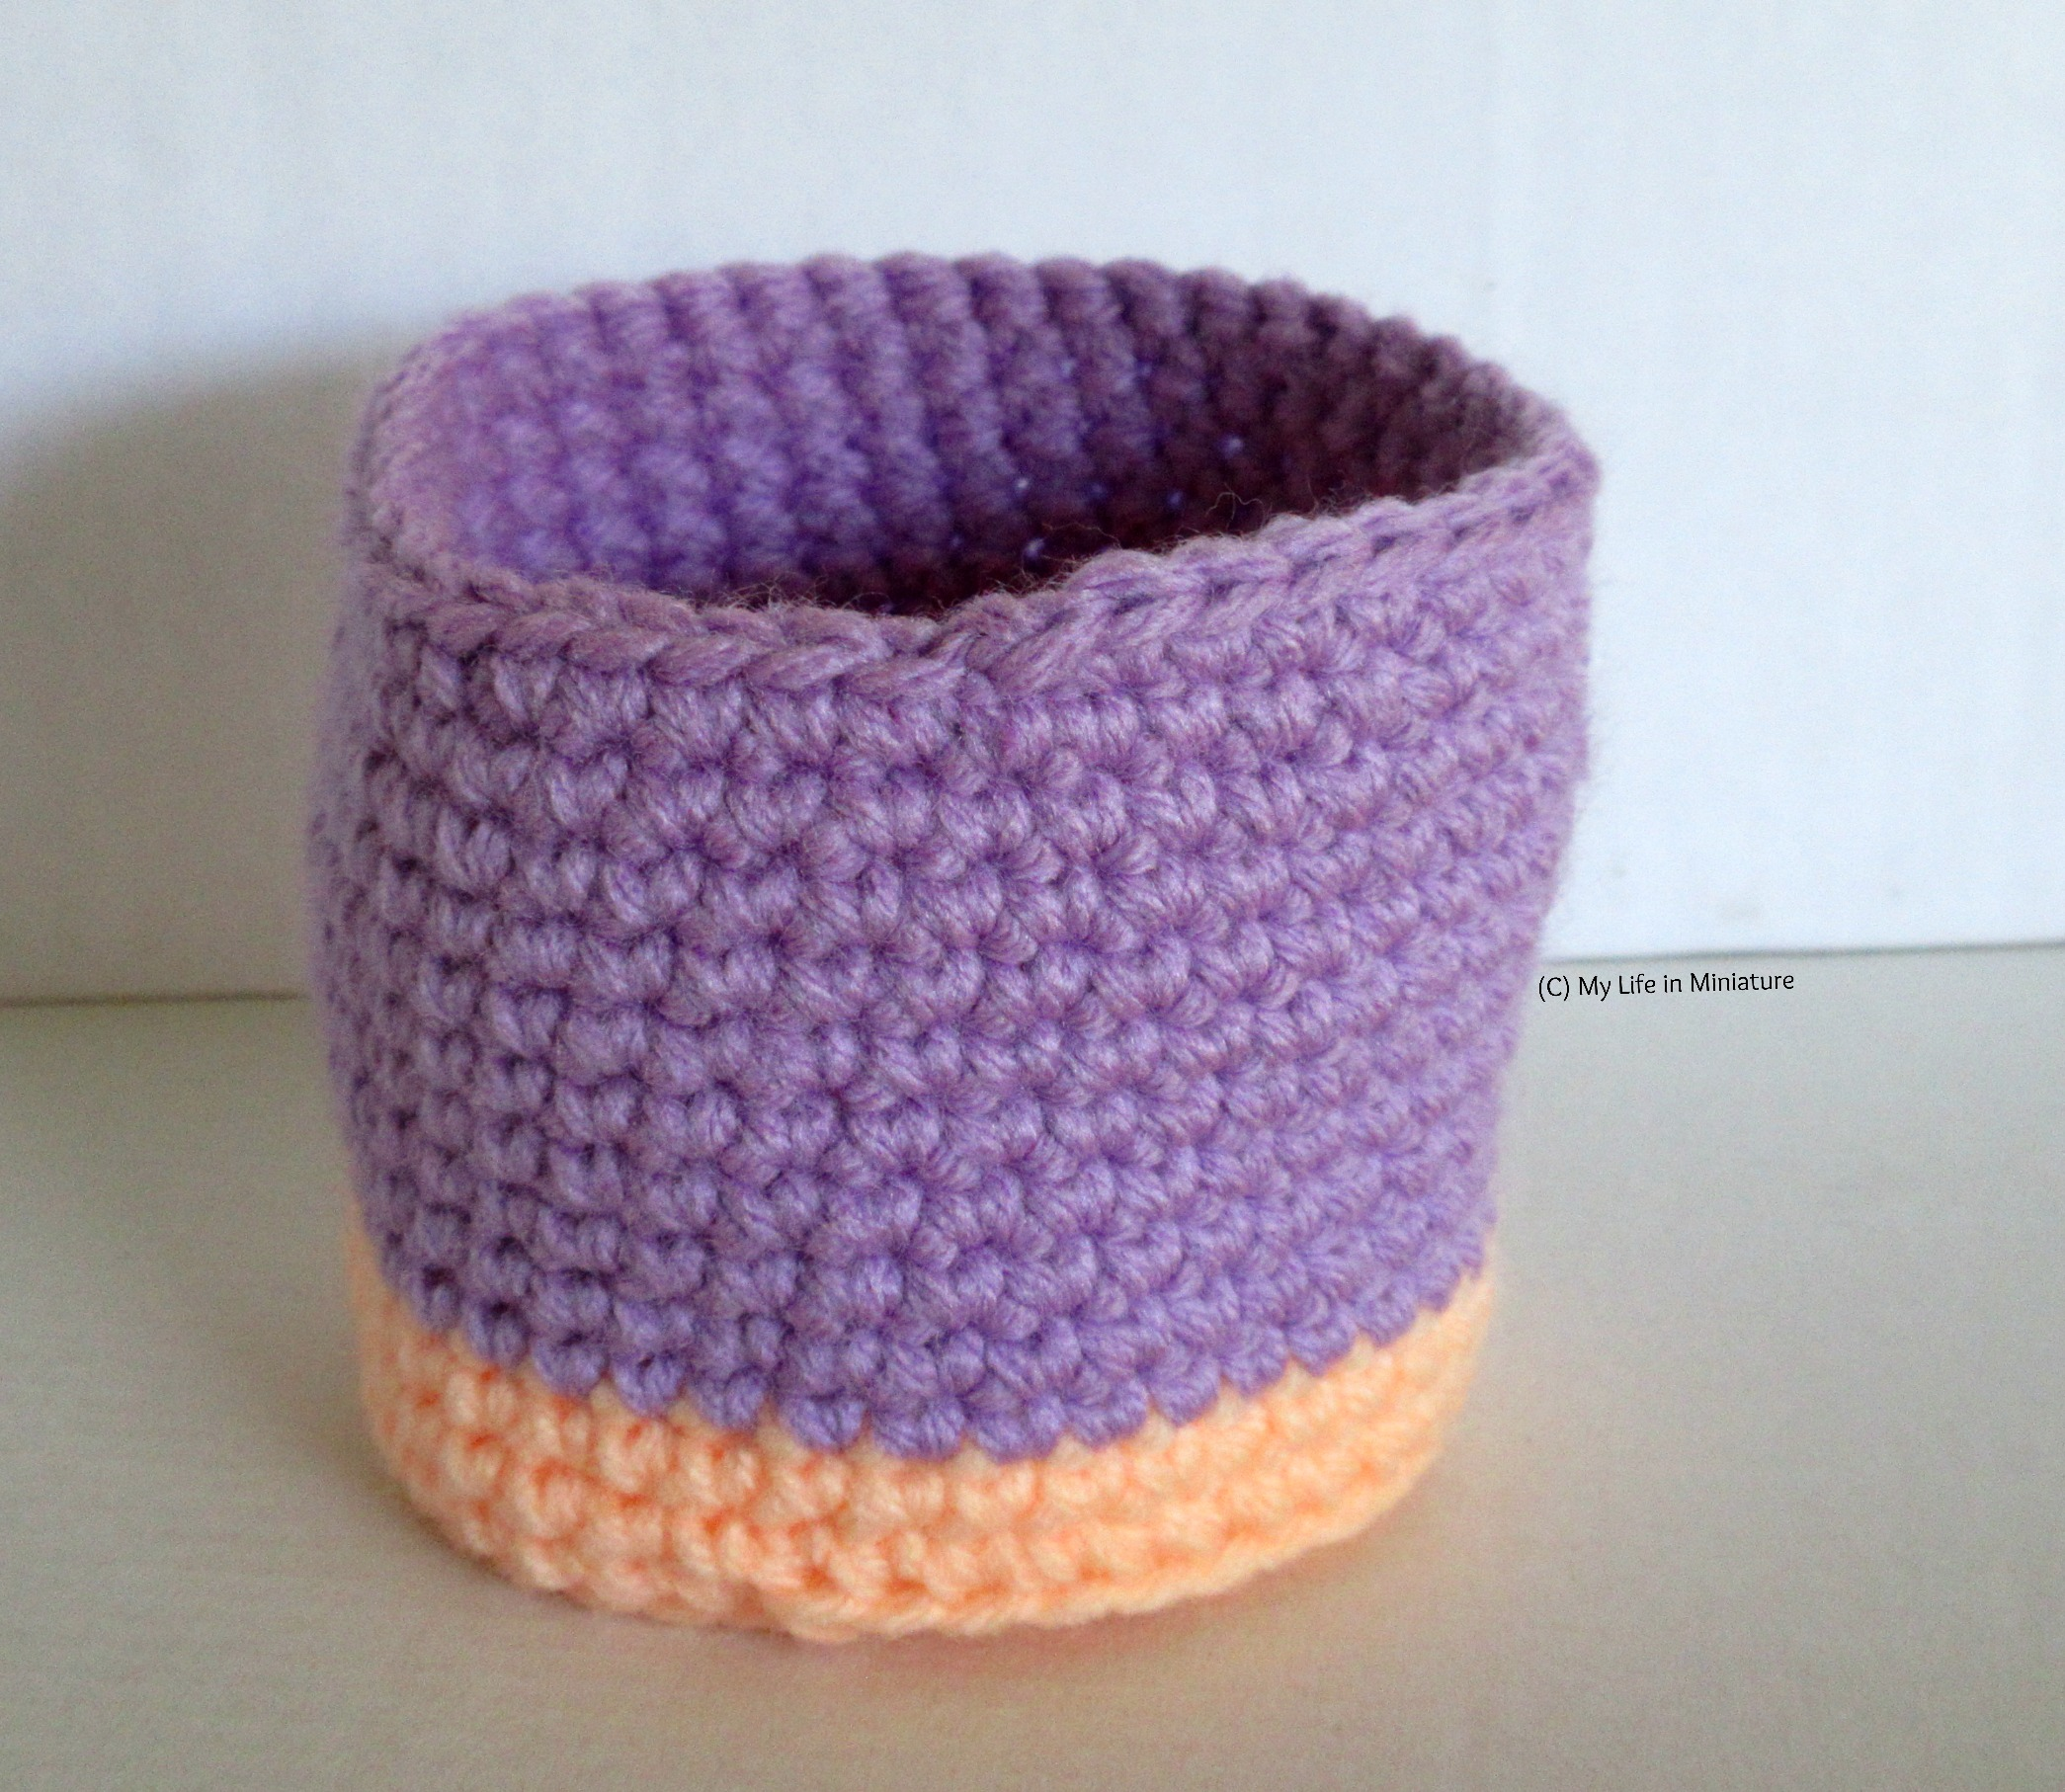 A crocheted nest sits against a white background. The base and first two rounds of the sides are orange, and the rest of the sides are purple.